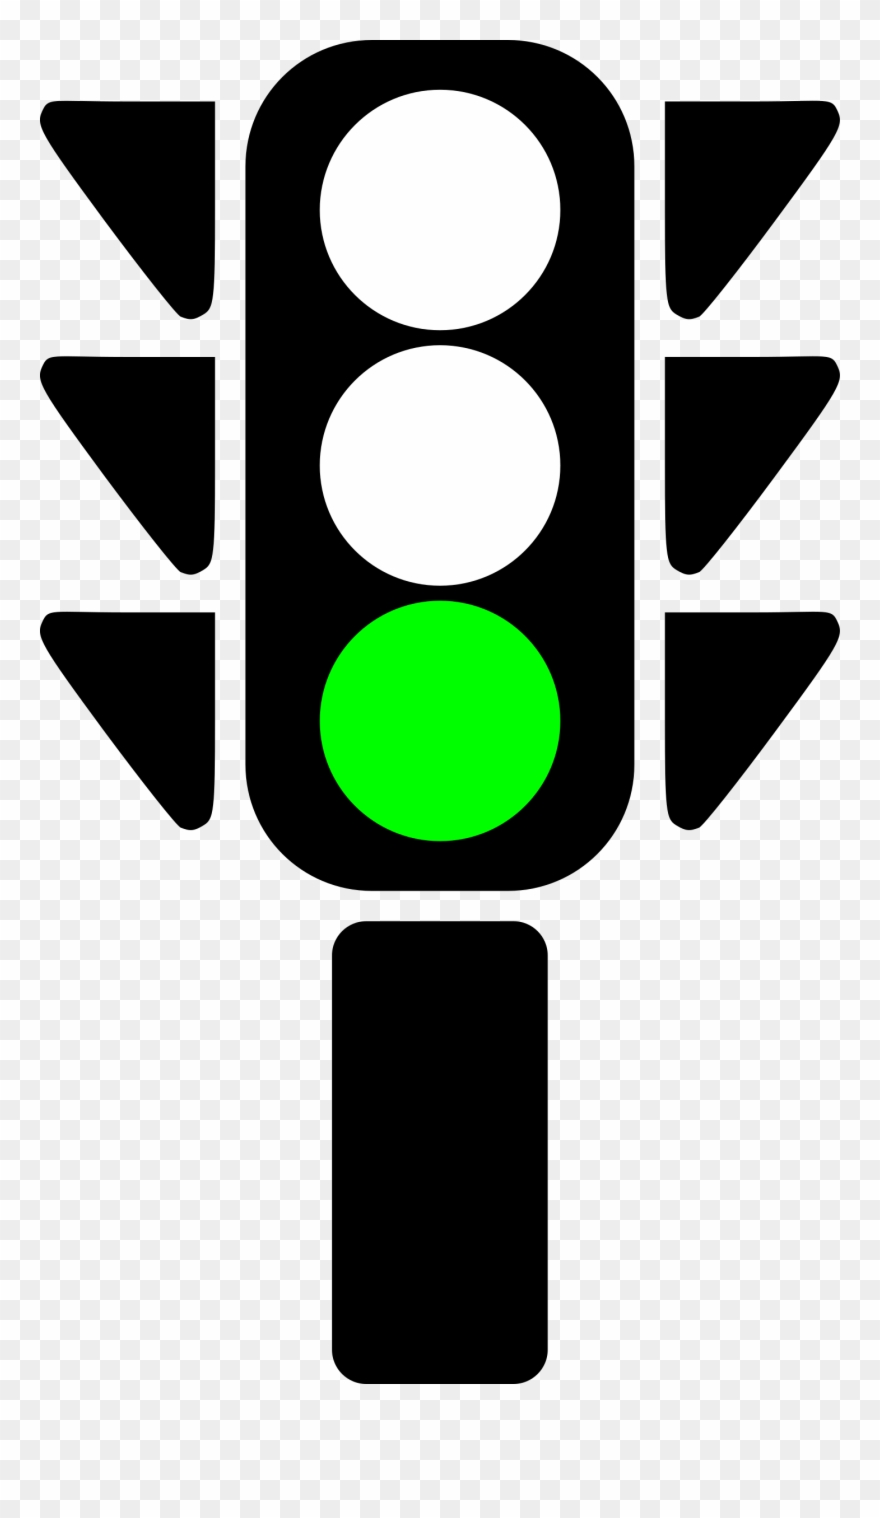 Traffic Semaphore Green Light Icons Png Free Png And Clipart.